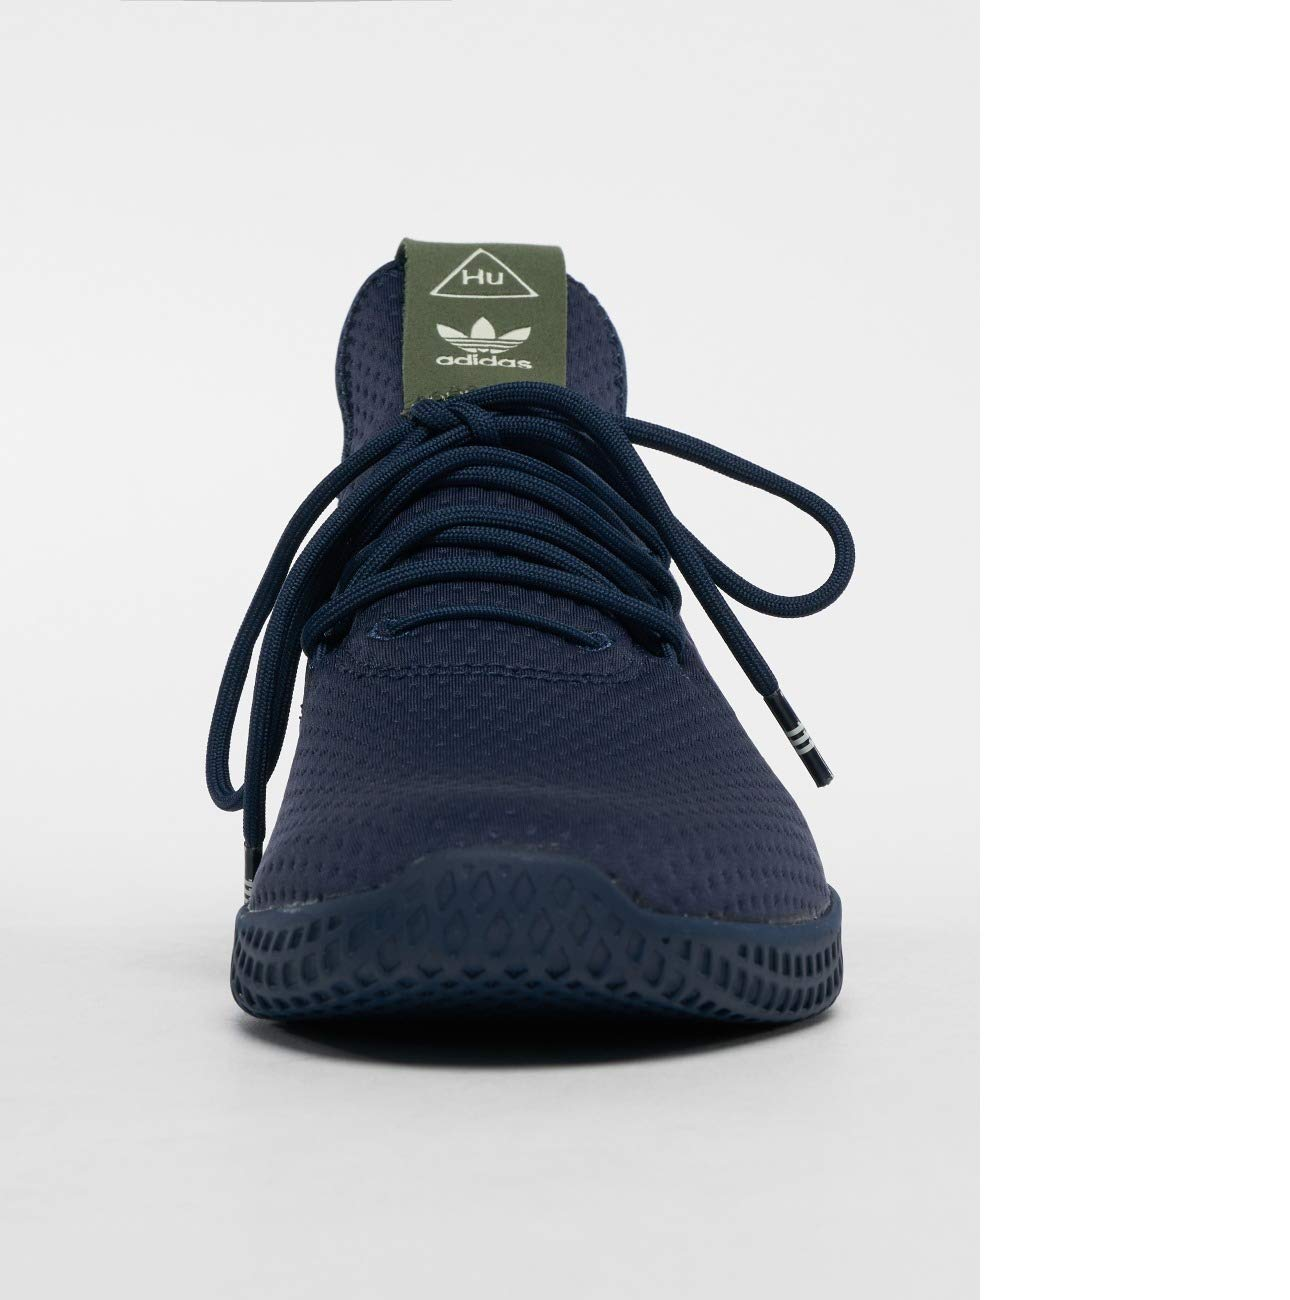 adidas Originals Pharrell Williams Tennis HU Sneaker dunkelblau, 12 UK 47 13 EU 12.5 US